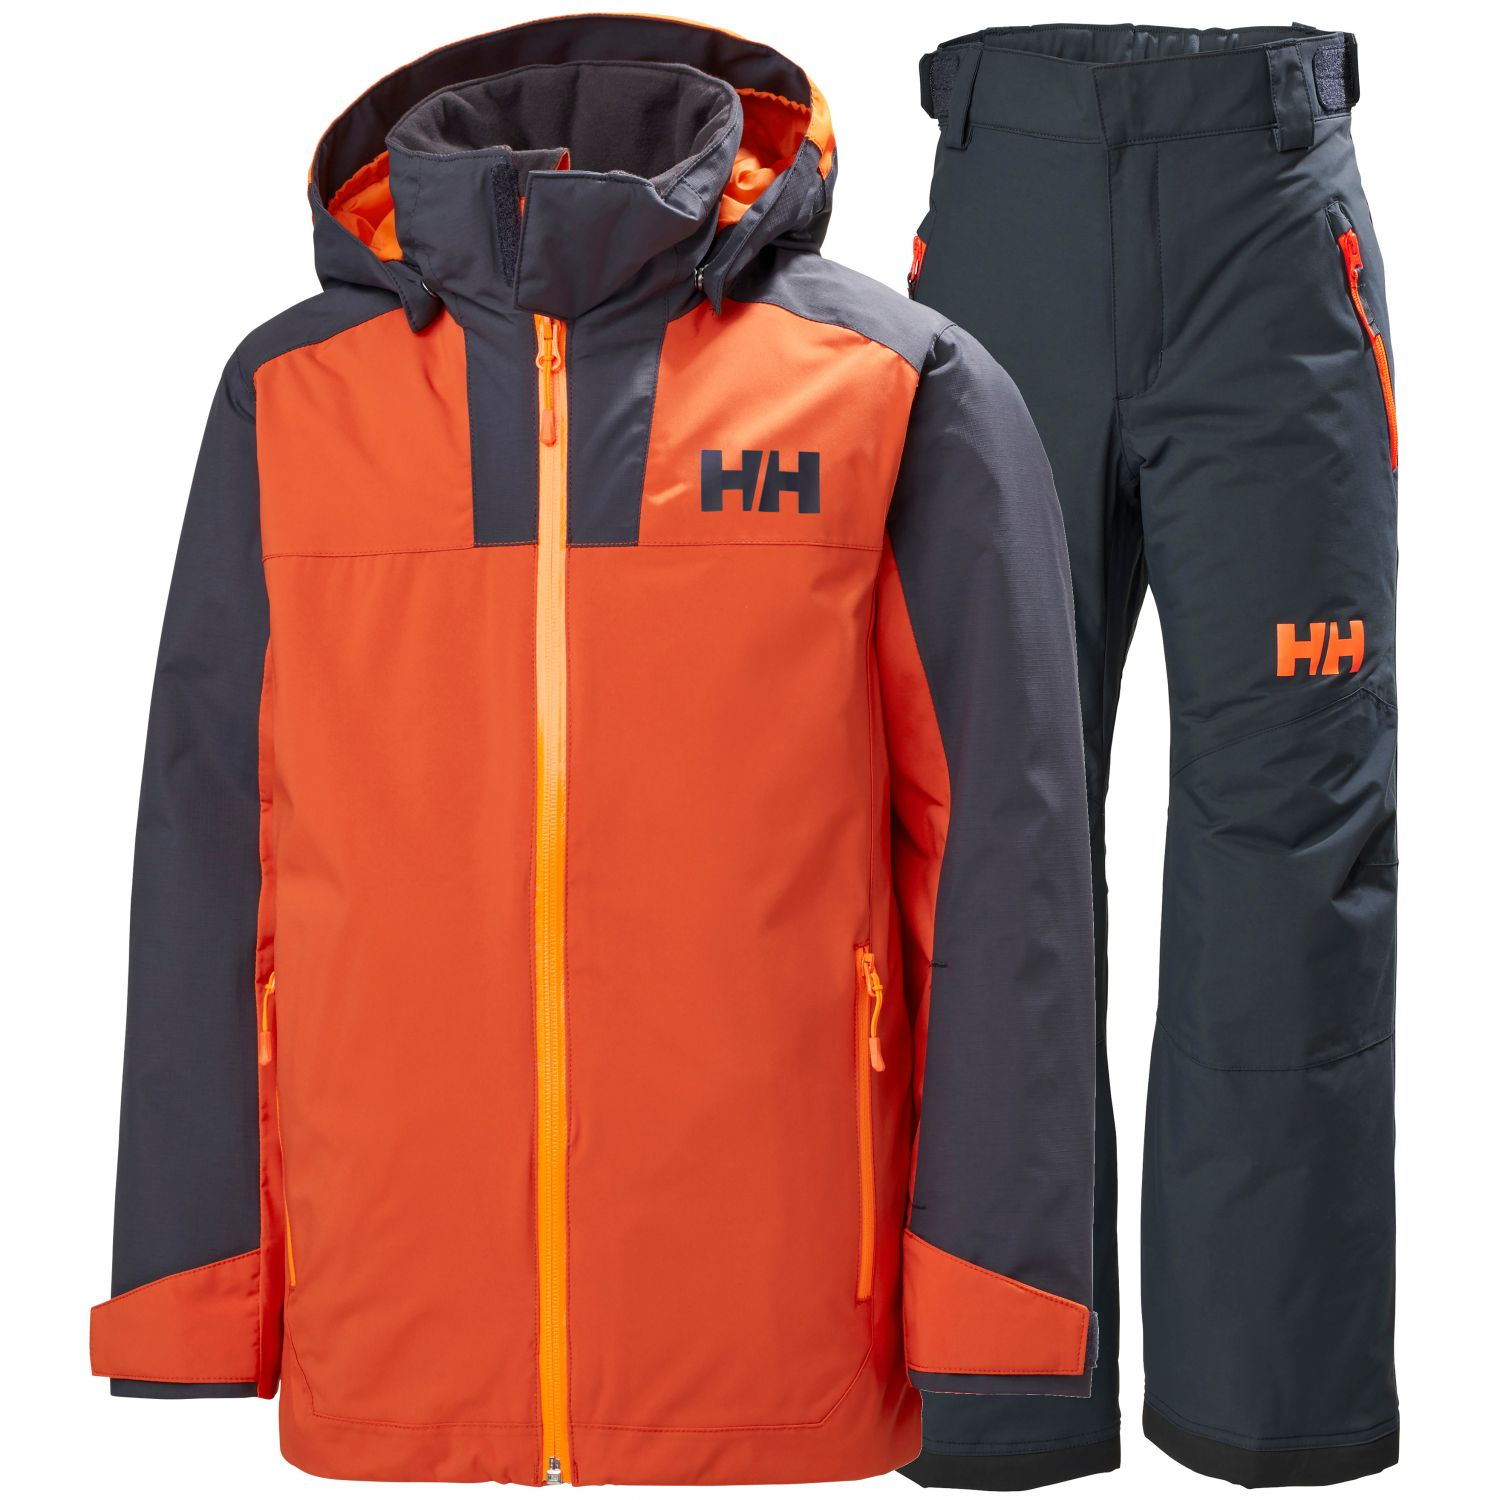 Helly Hansen Terrain/Legendary skisæt, børn, orange/blå